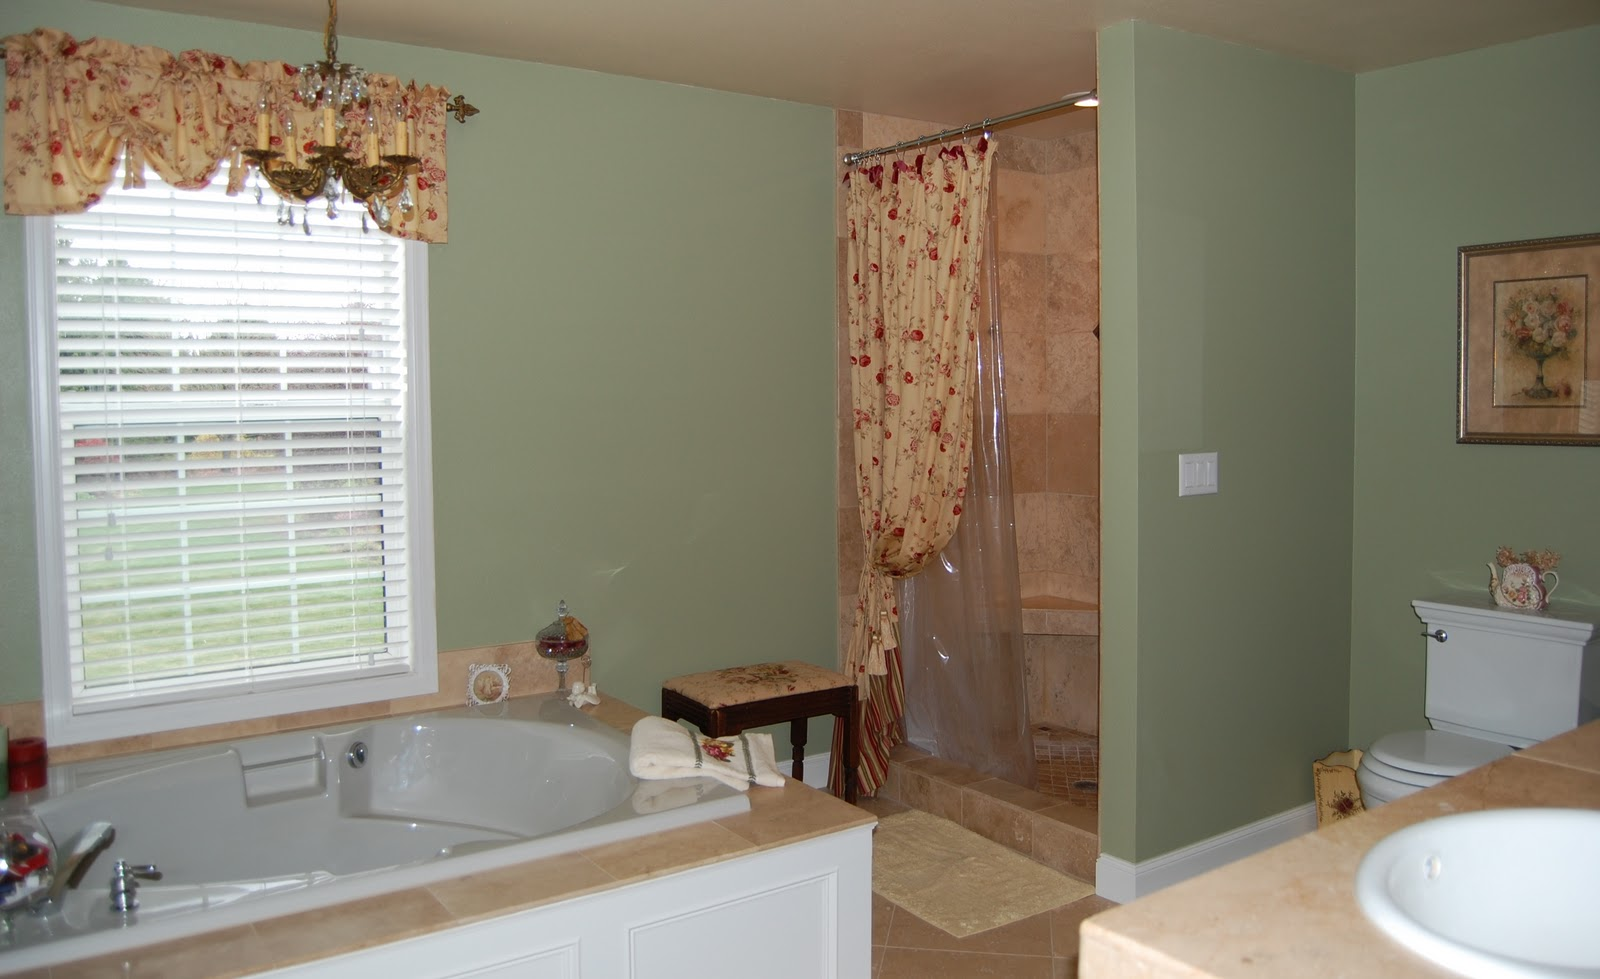 New Sage Green Rose Bathrooms With Tile And Tub